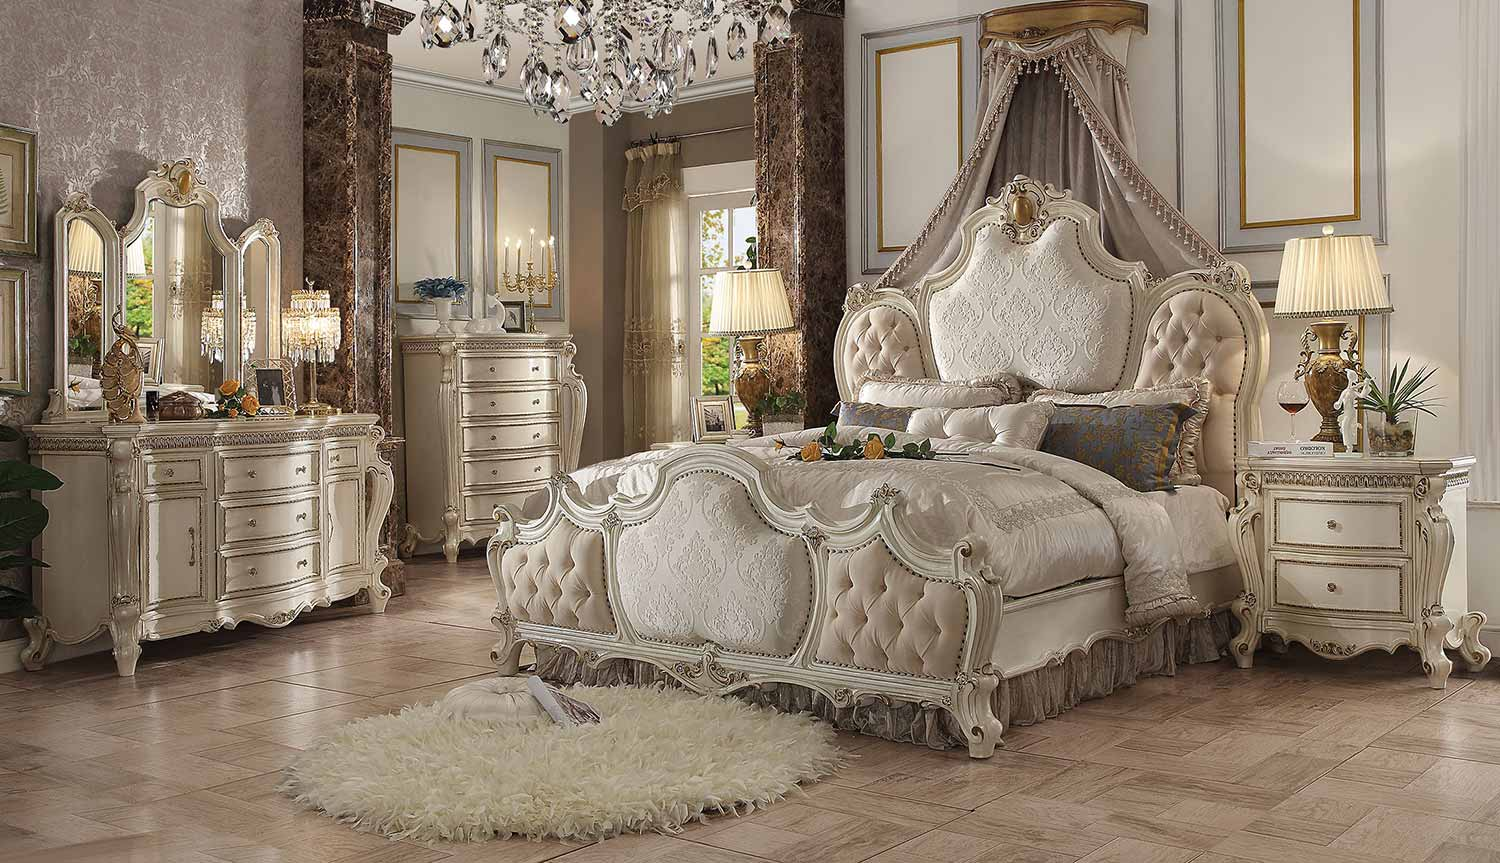 Acme Picardy Bedroom Set - Fabric/Antique Pearl